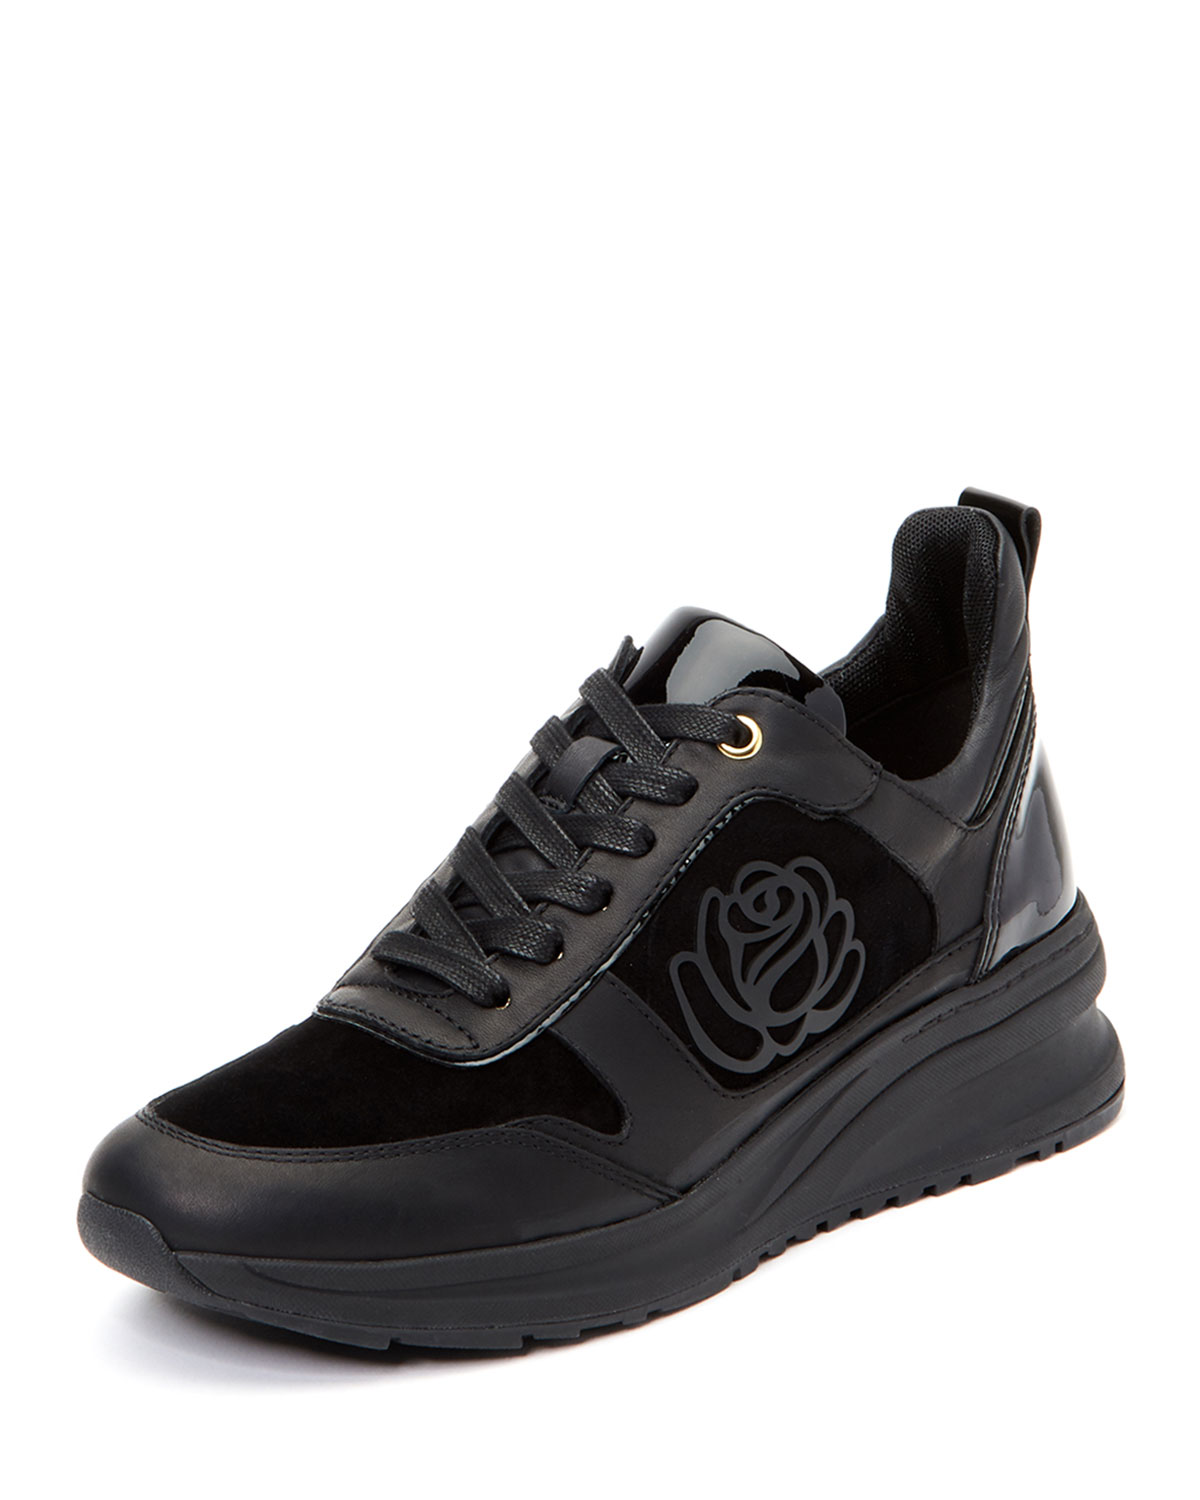 5db03c48bcb3 Taryn Rose Zadie Chunky-Sole Leather Trainer Sneakers